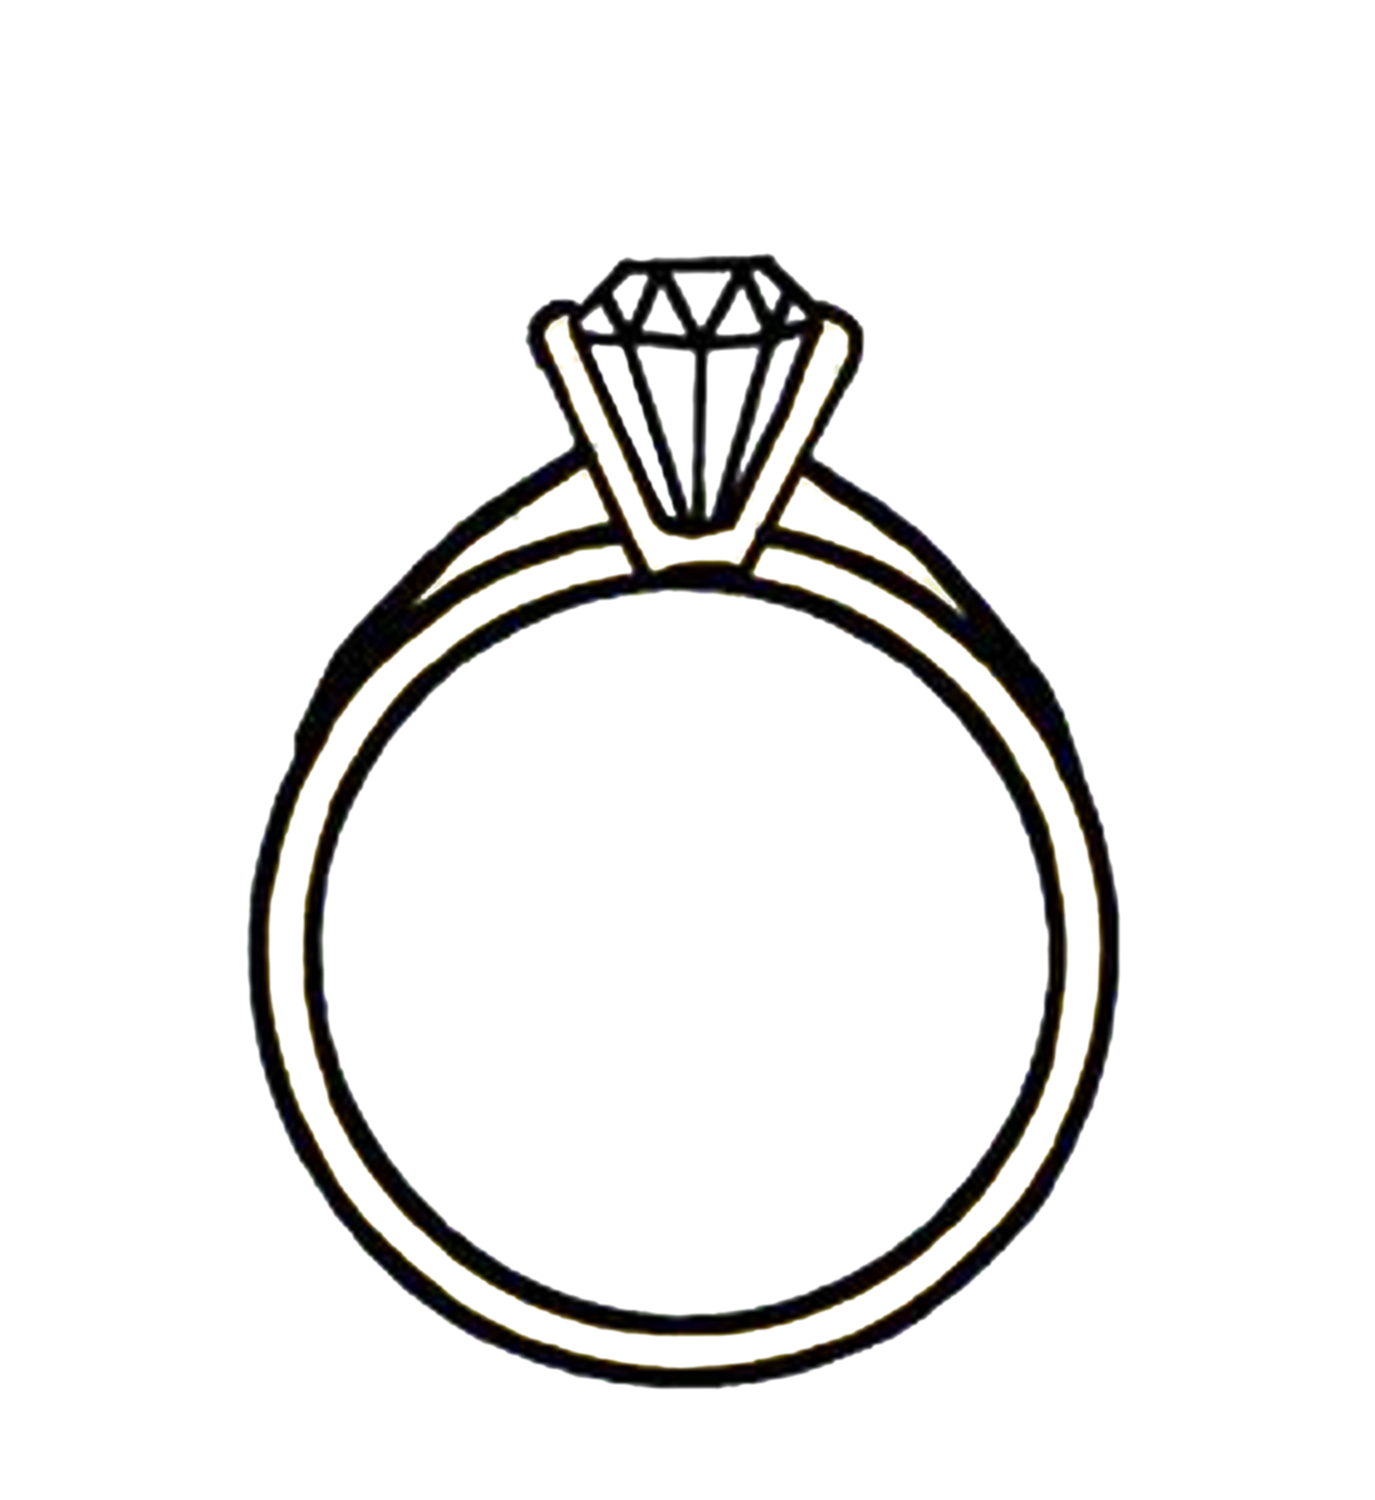 Clipart Wedding Rings - ClipArt Best - ClipArt Best